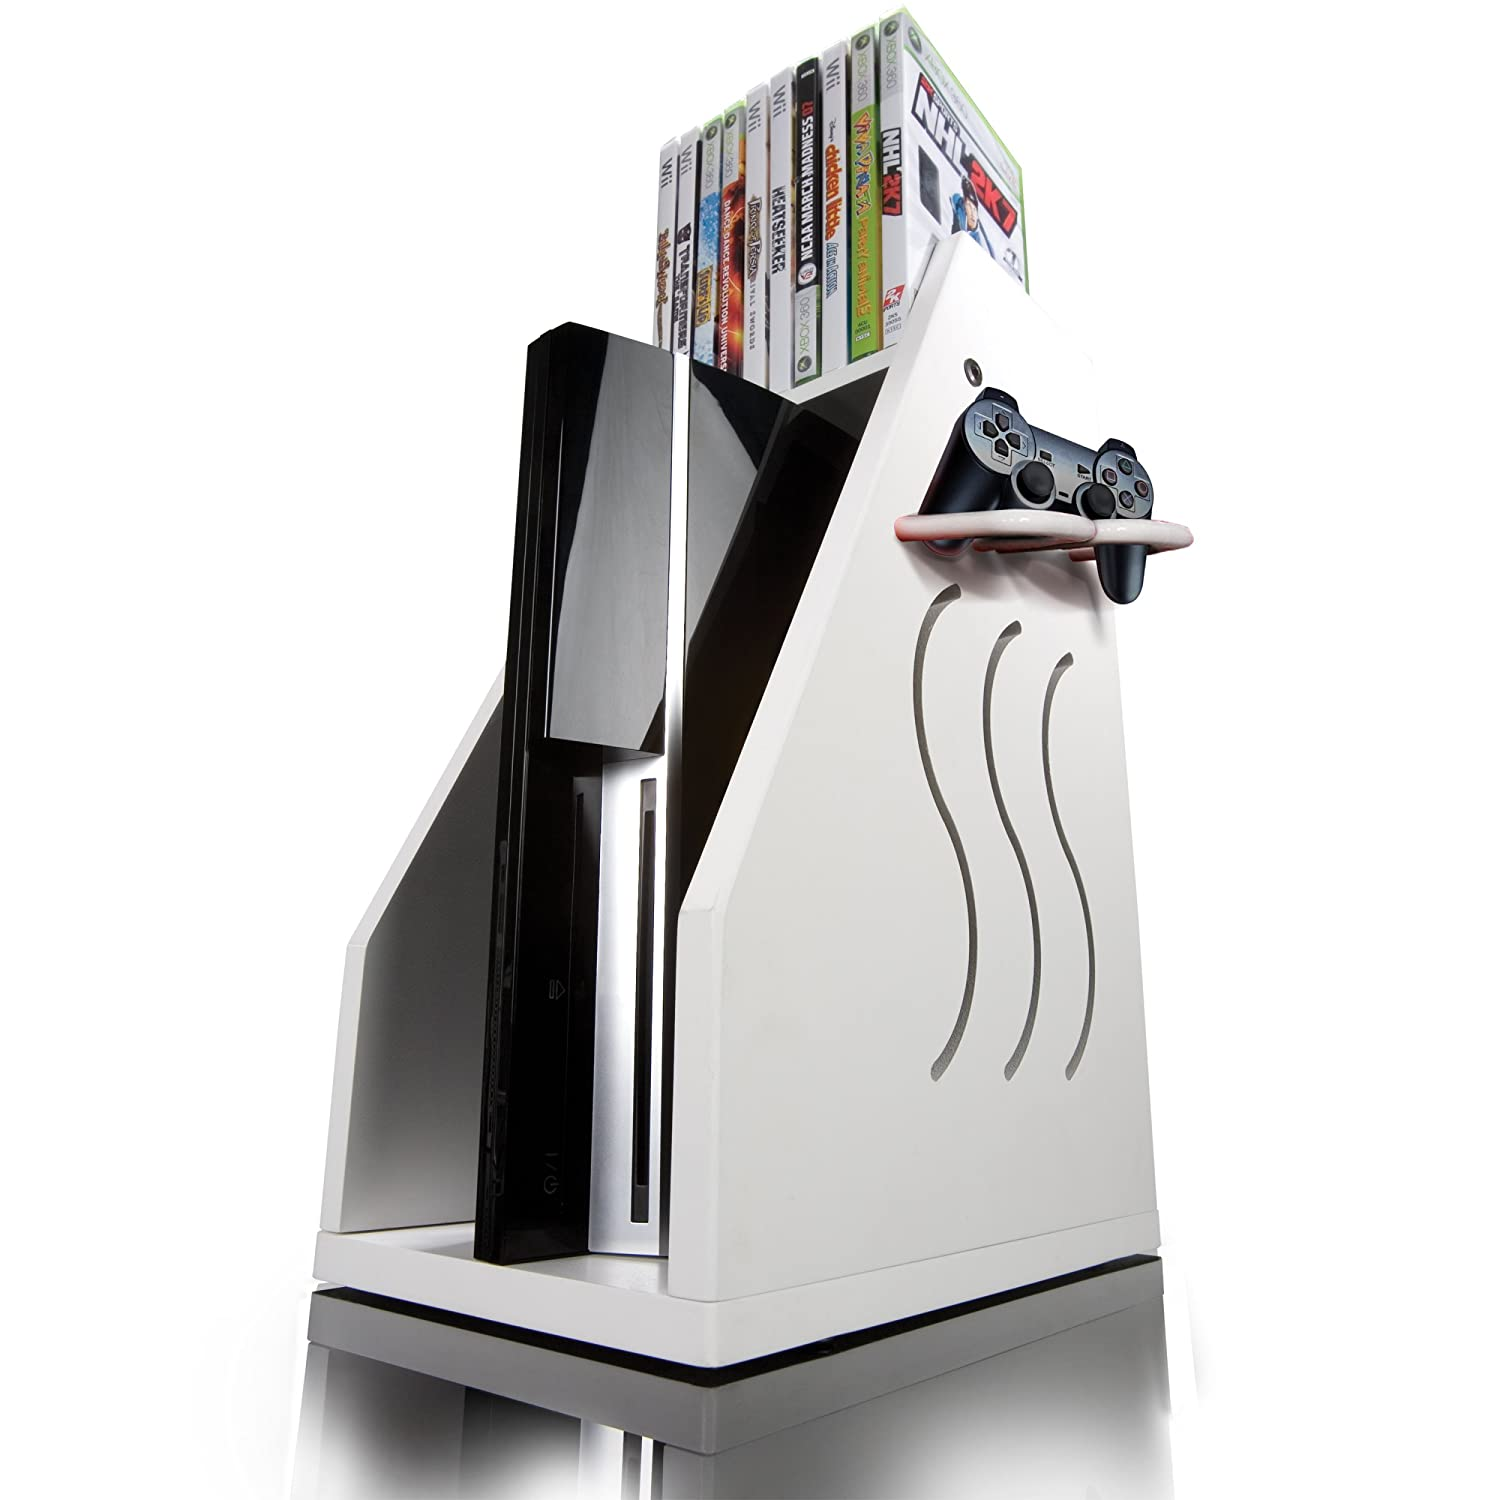 GameOn Video Gaming Console Storage   White: Playstation 3: Computer And  Video Games   Amazon.ca